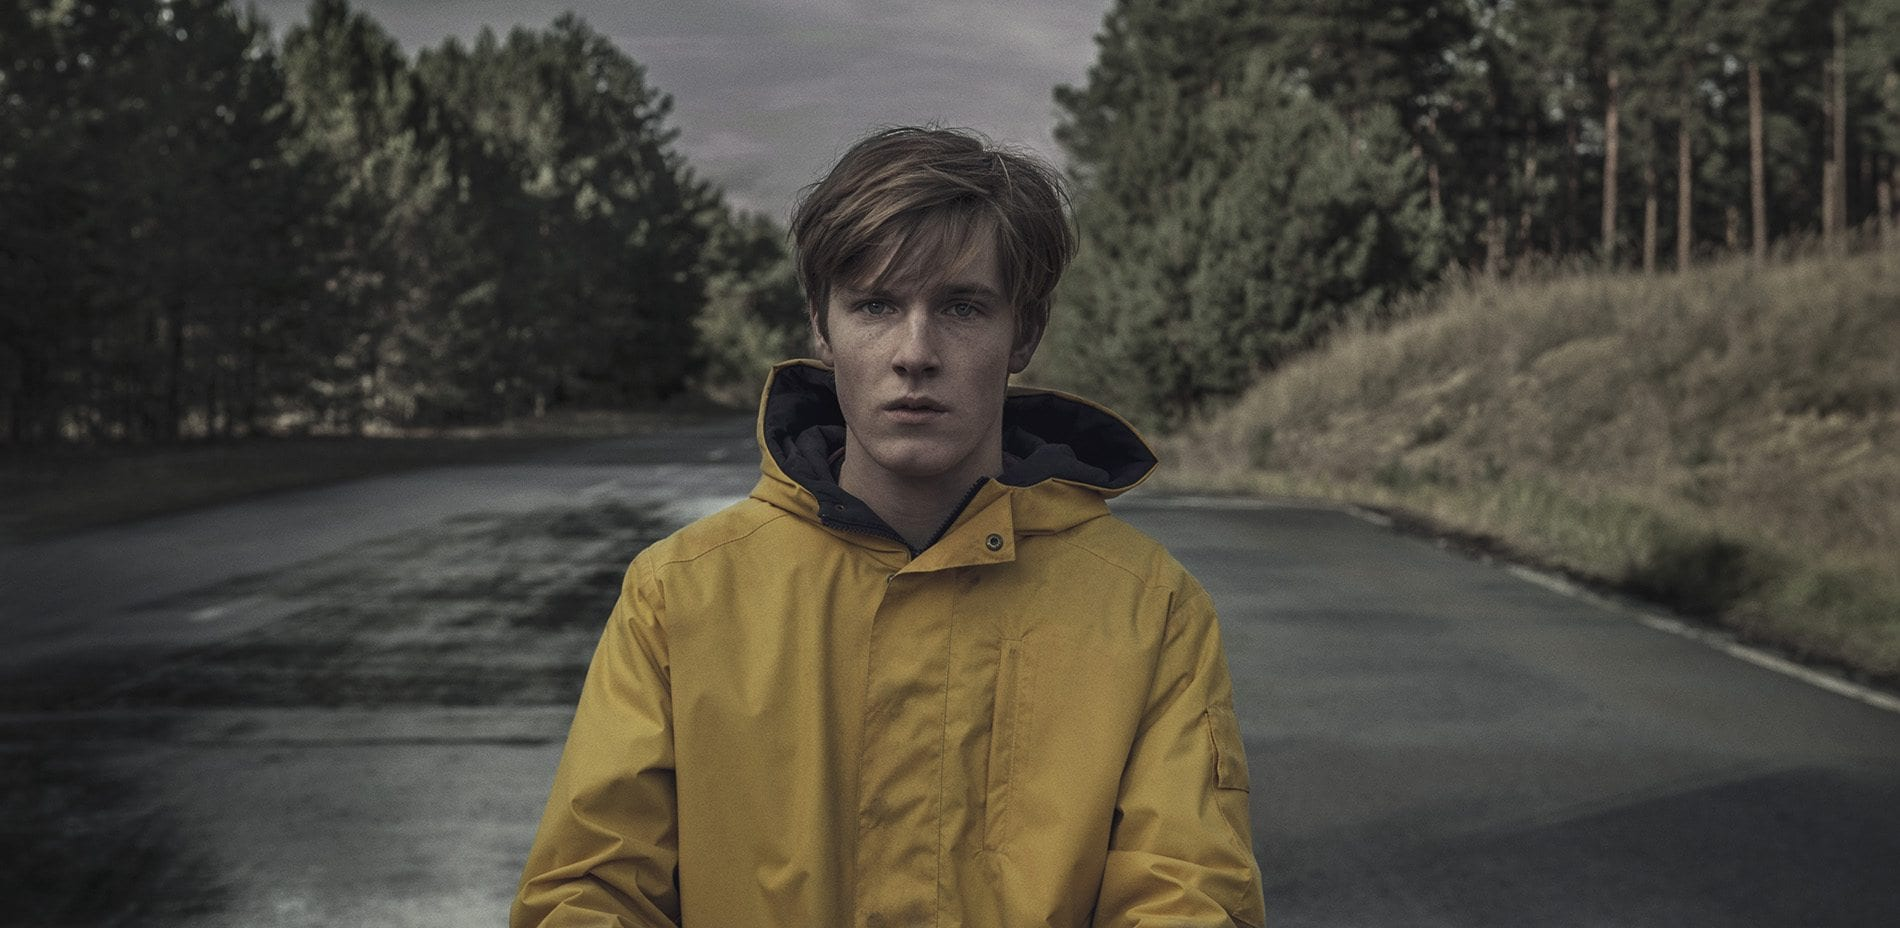 'Dark' is set in a German town in present day where the disappearance of two young children exposes the fractured relationships of four families.